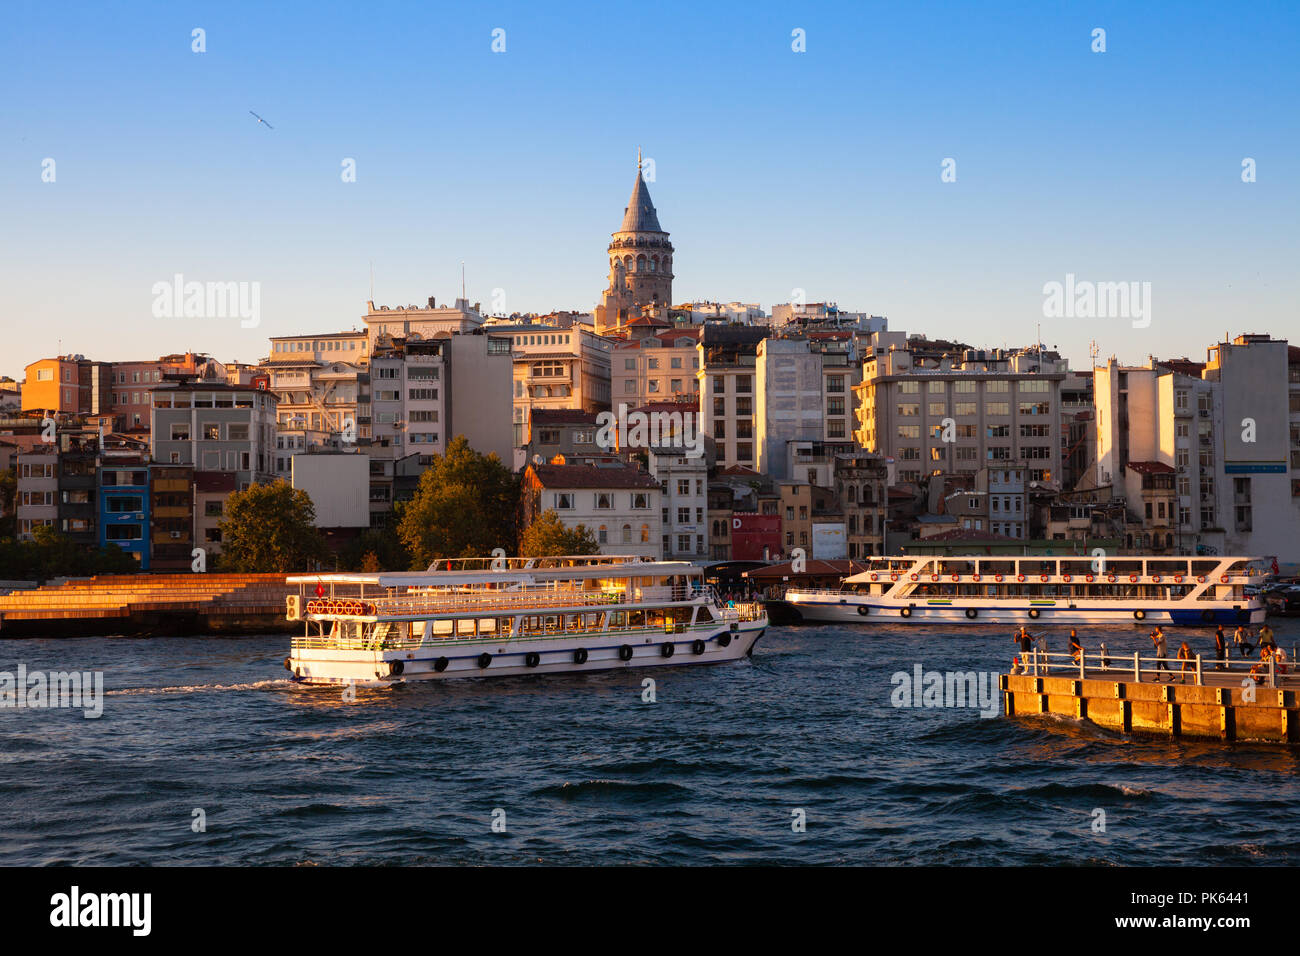 The beautiful view of the Galata Tower and Golden Horn at sunset, Istanbul, Turkey Stock Photo